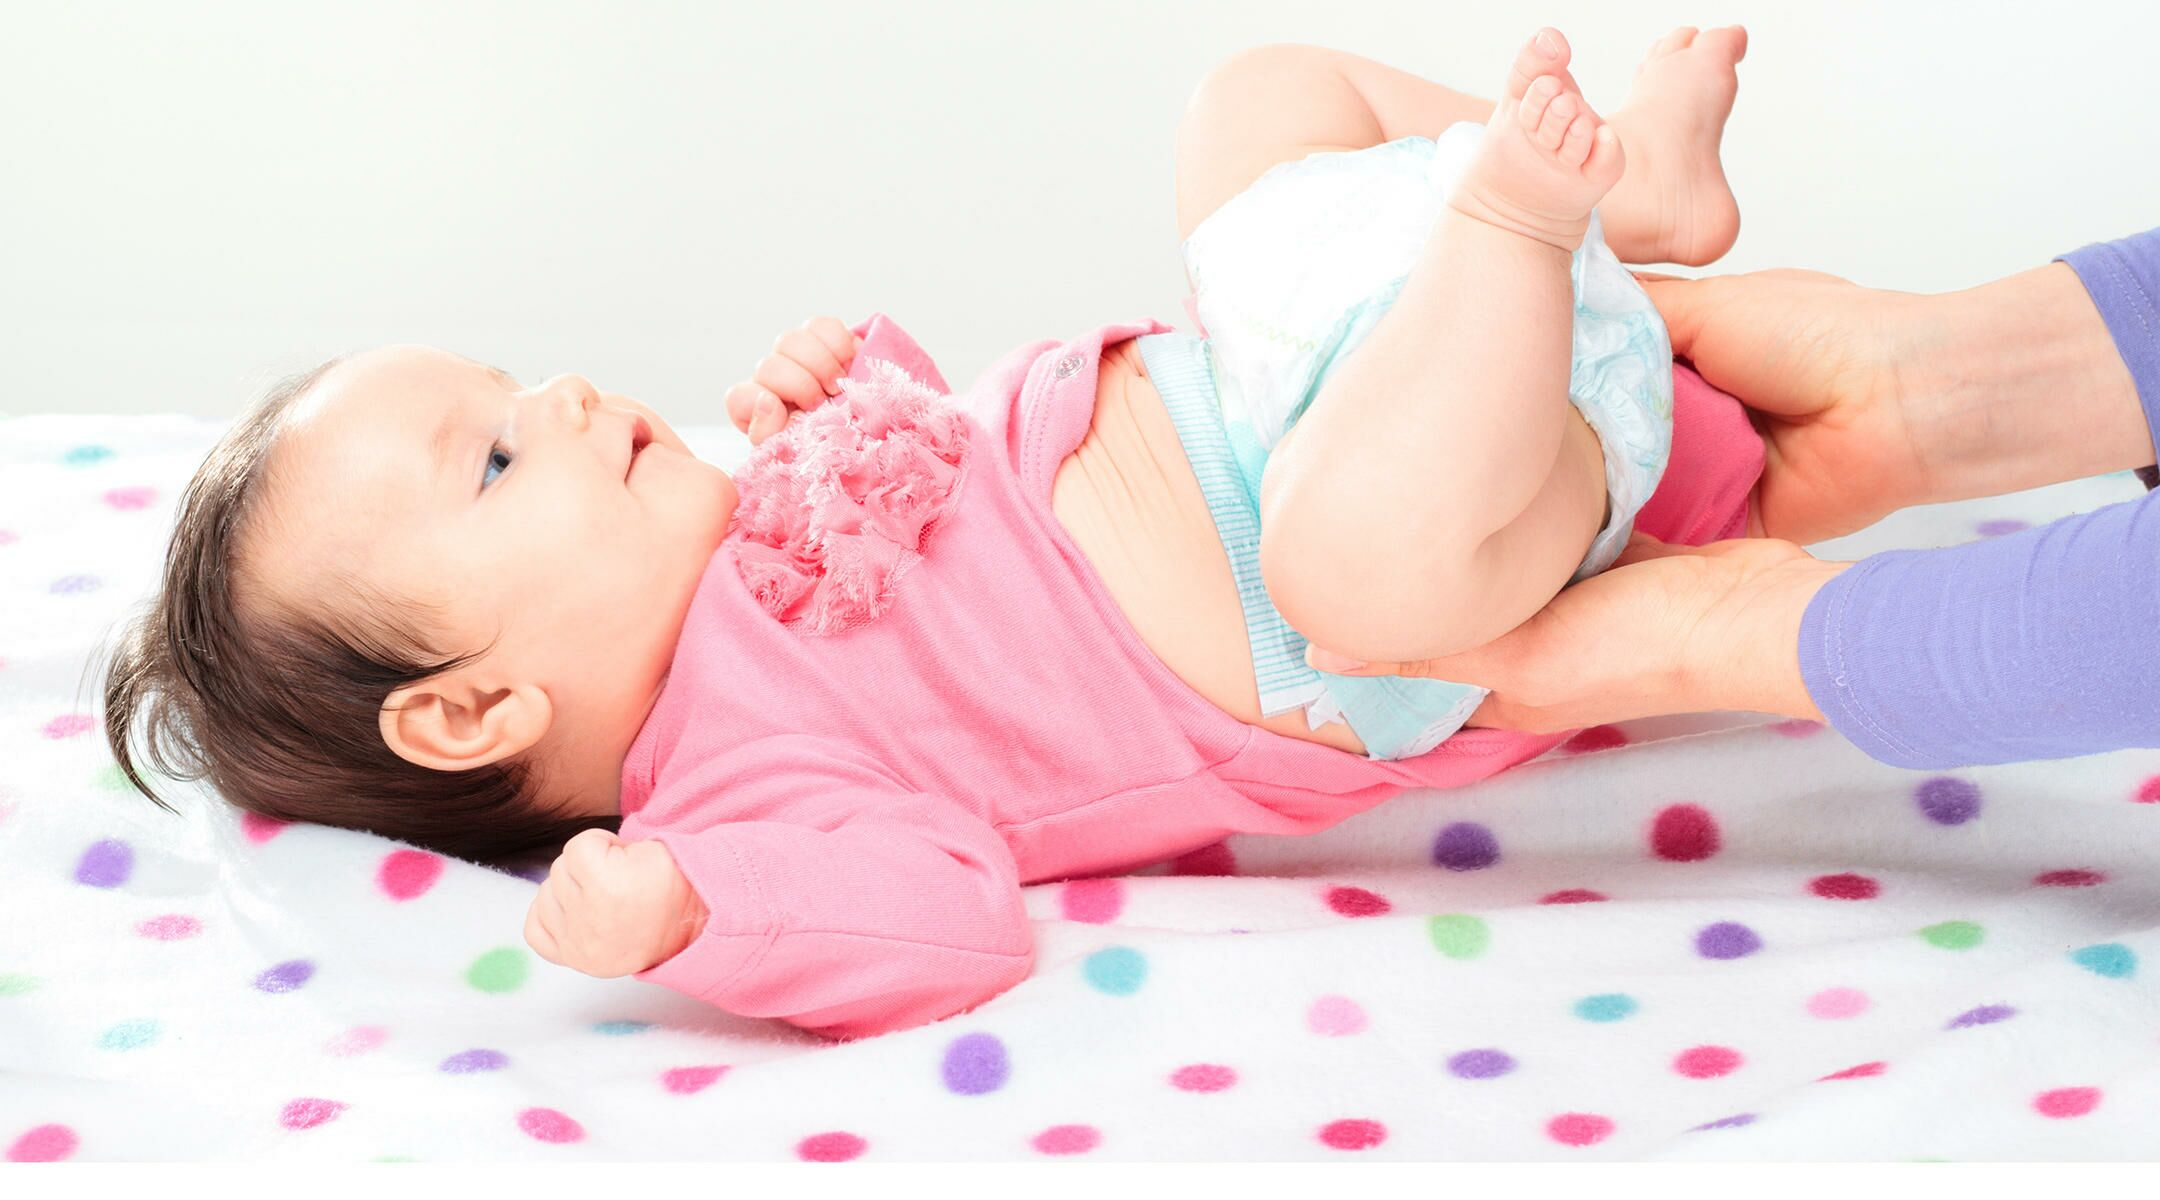 Q&A: Baby Squirmy on Diaper Table?